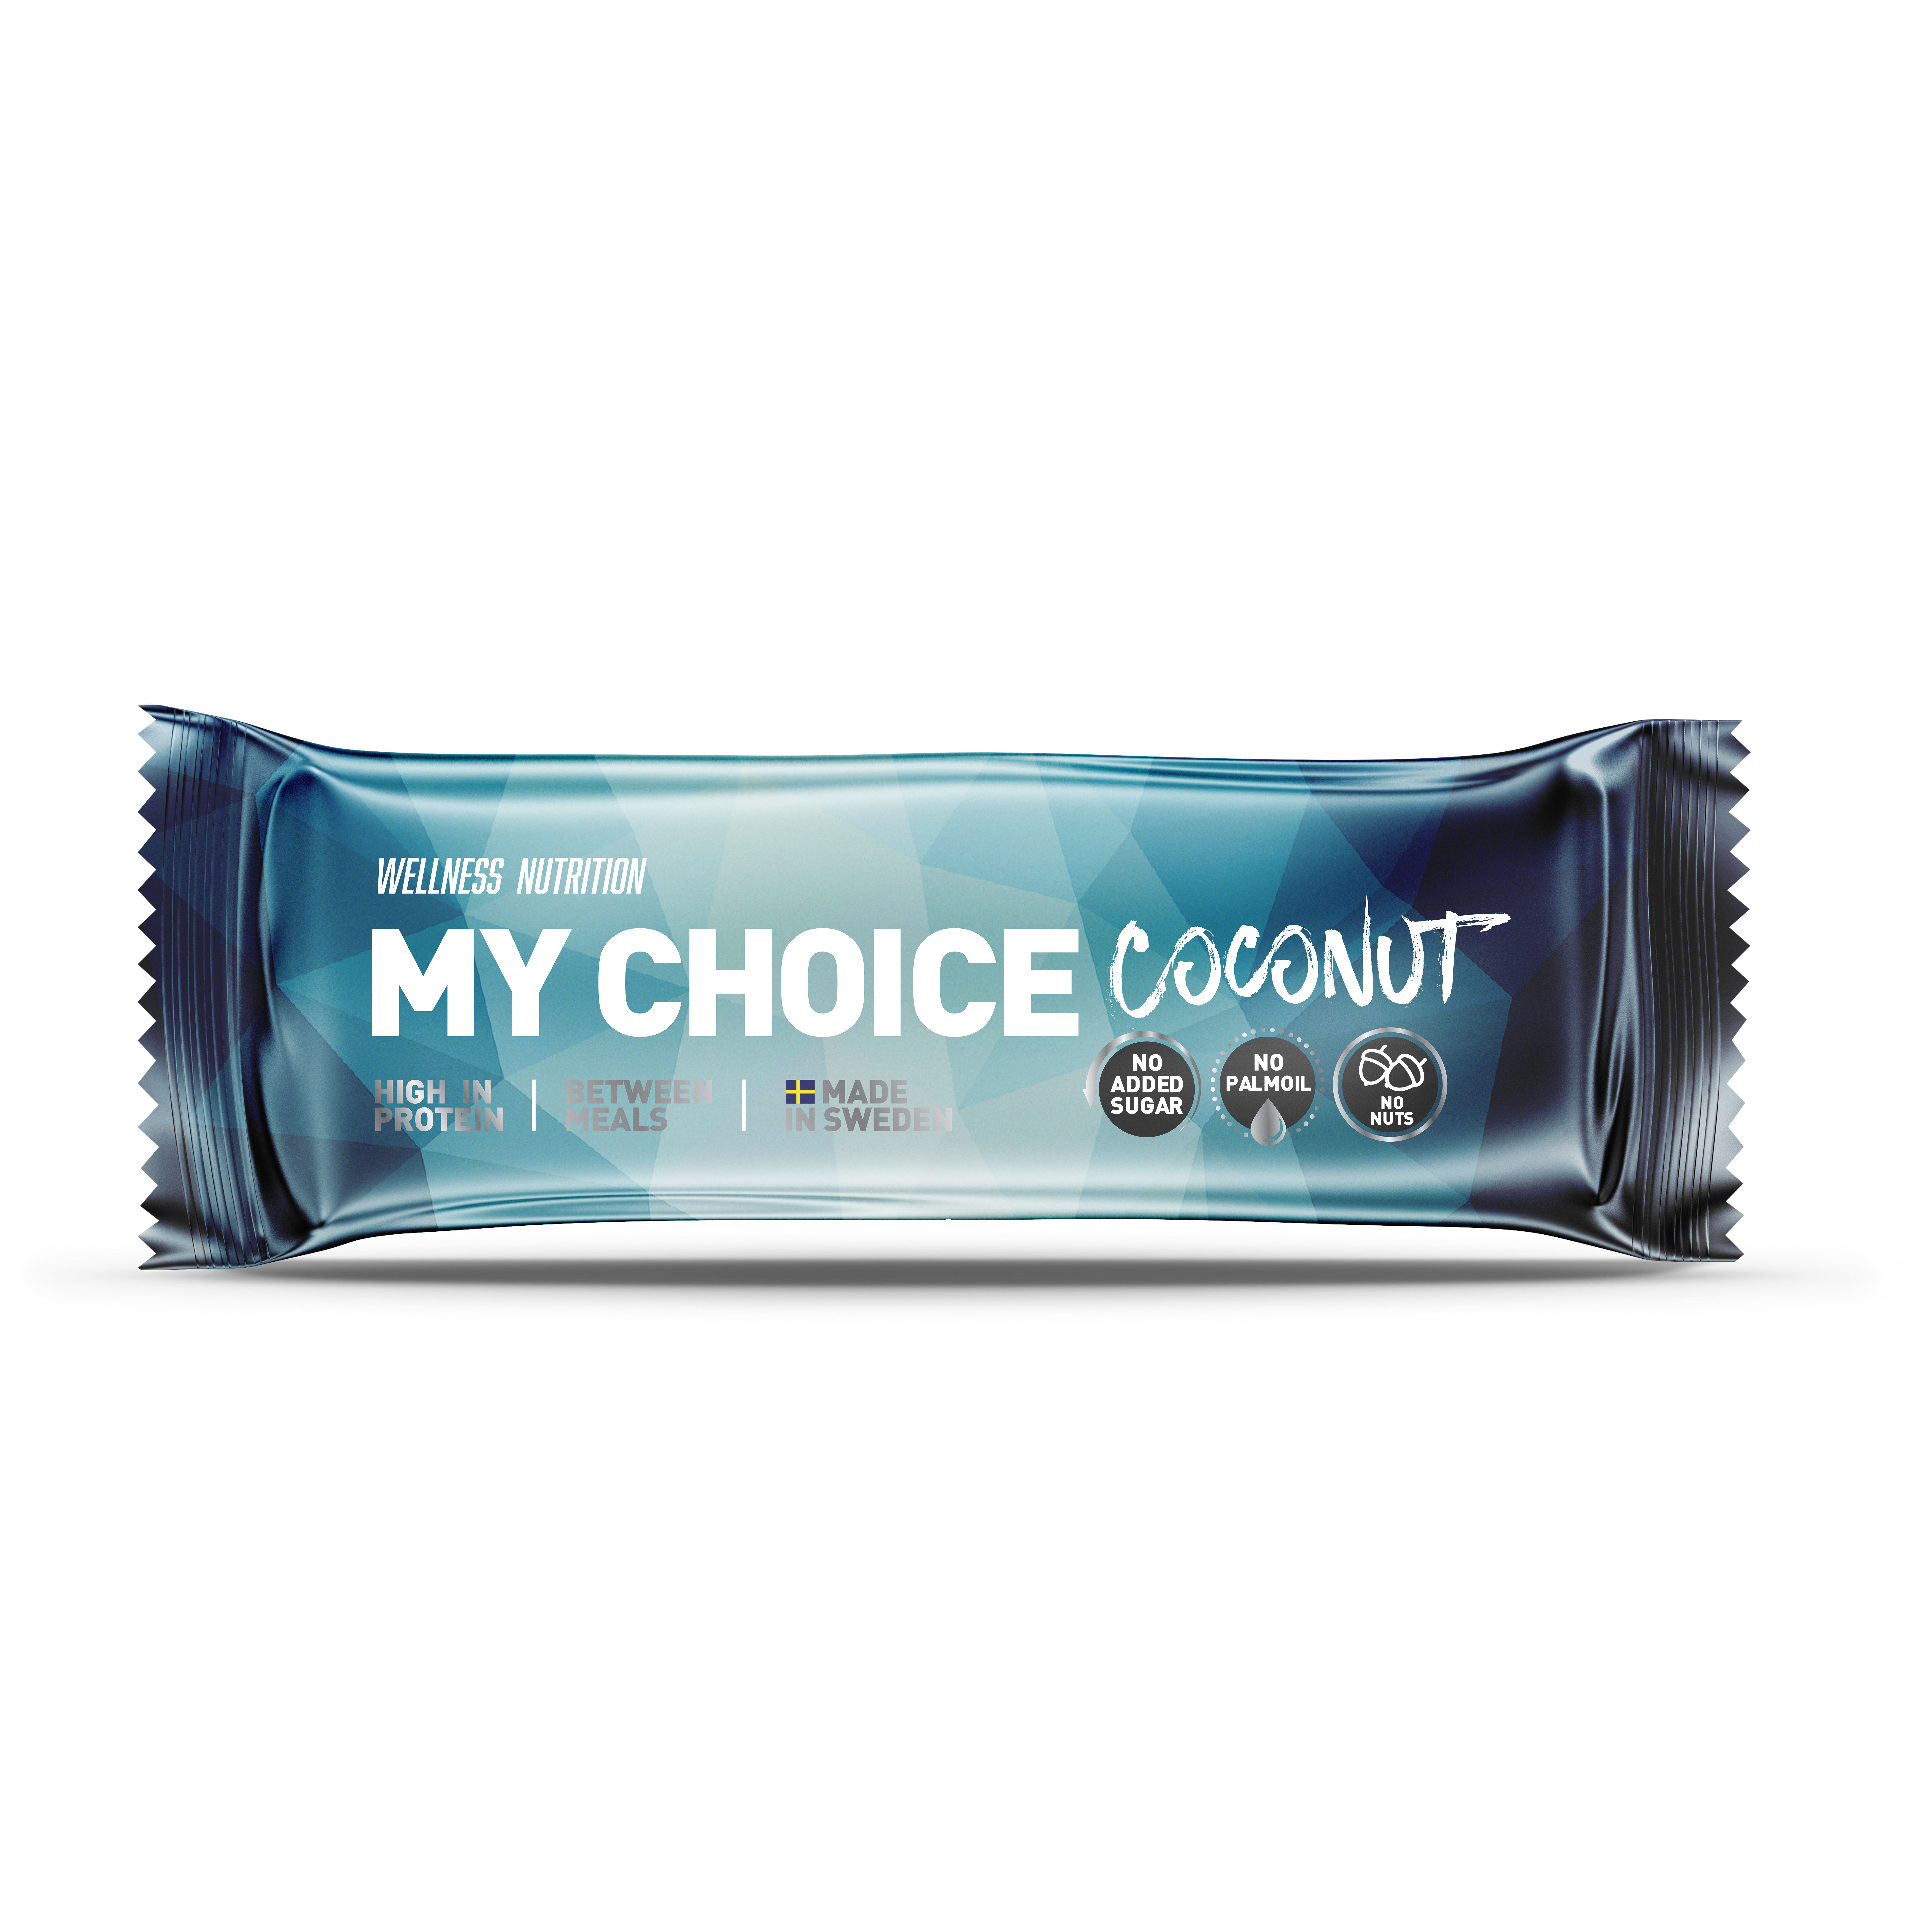 My Choice Coconut